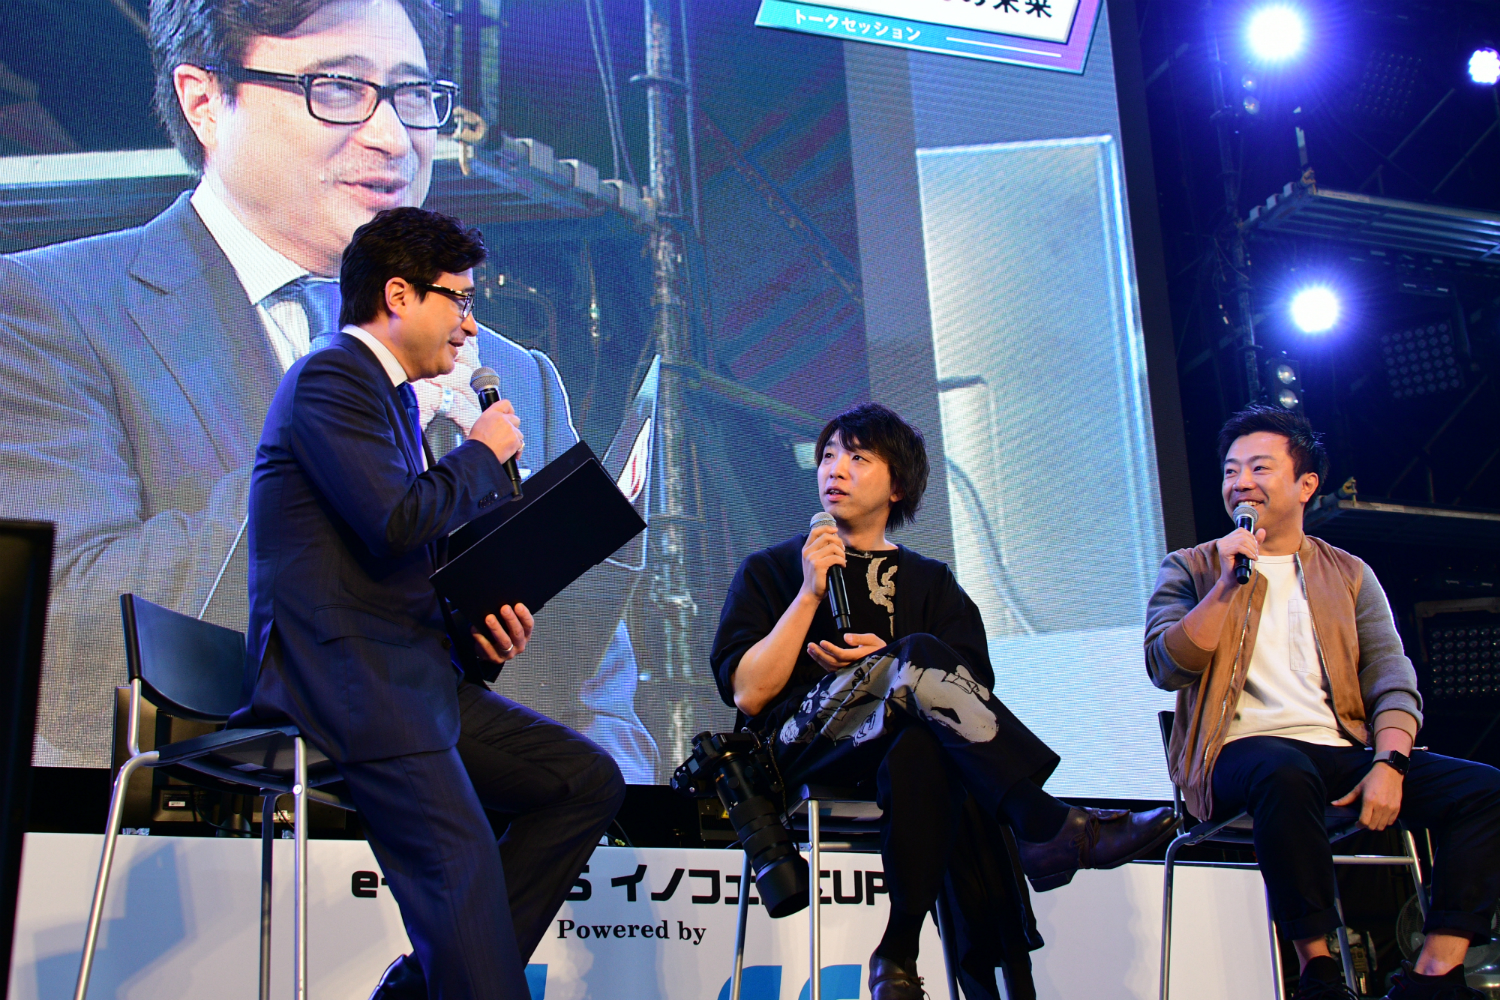 「e-Sports イノフェスCUP Powered by Zoff」